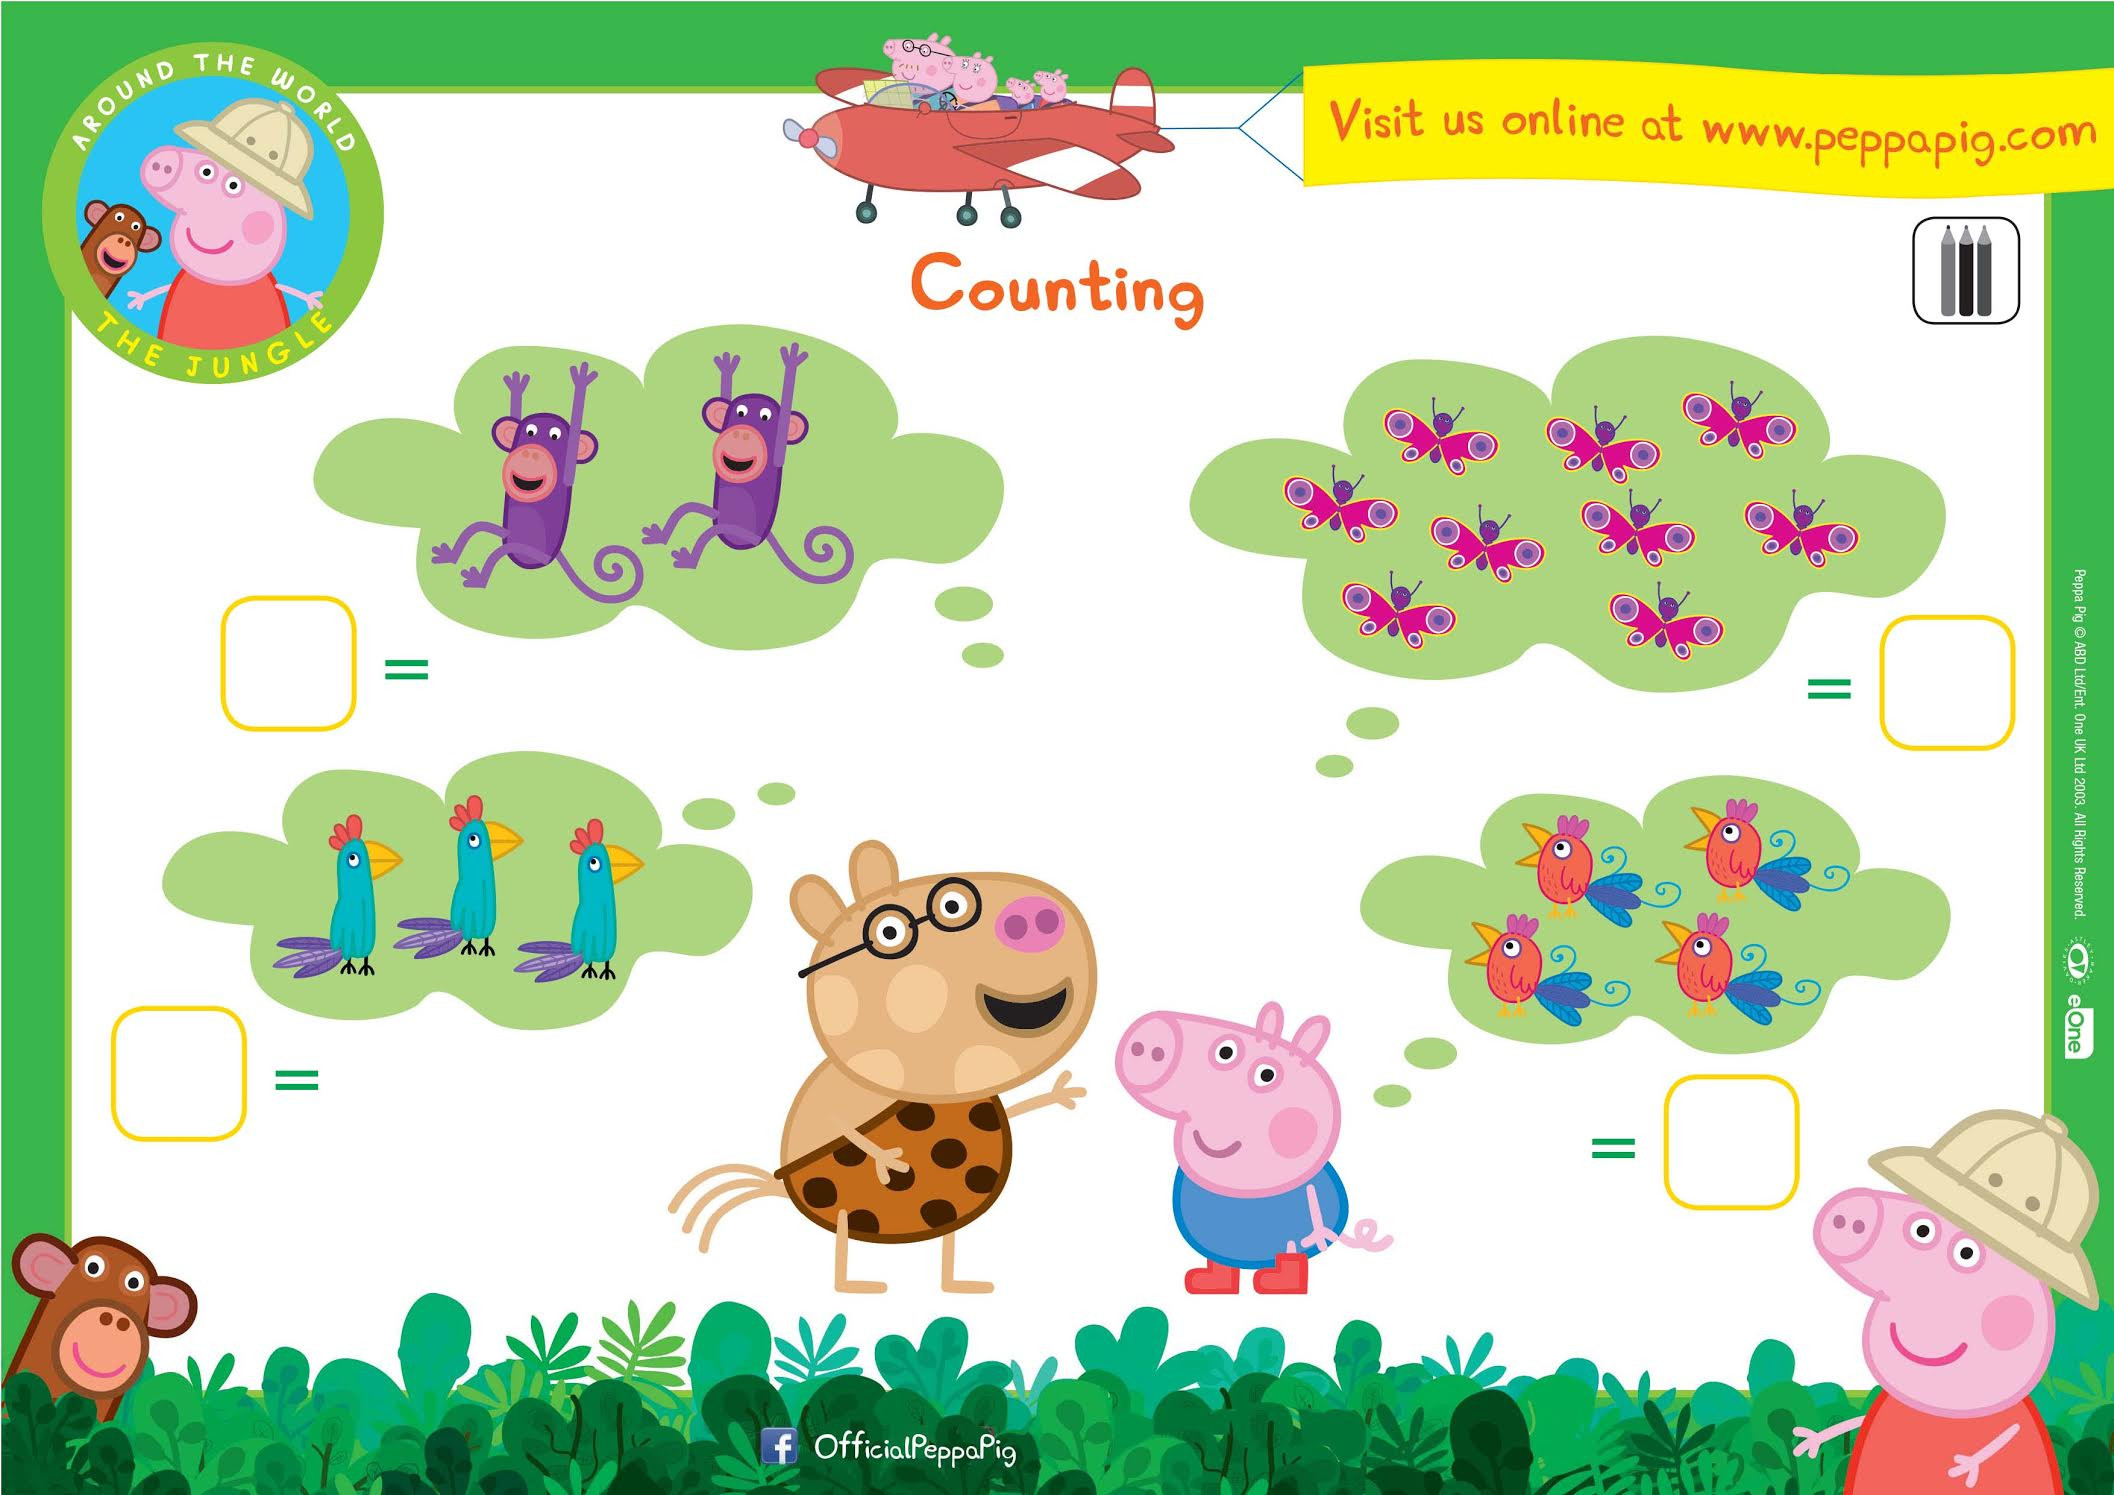 6 Farm Animals Counting Puzzle